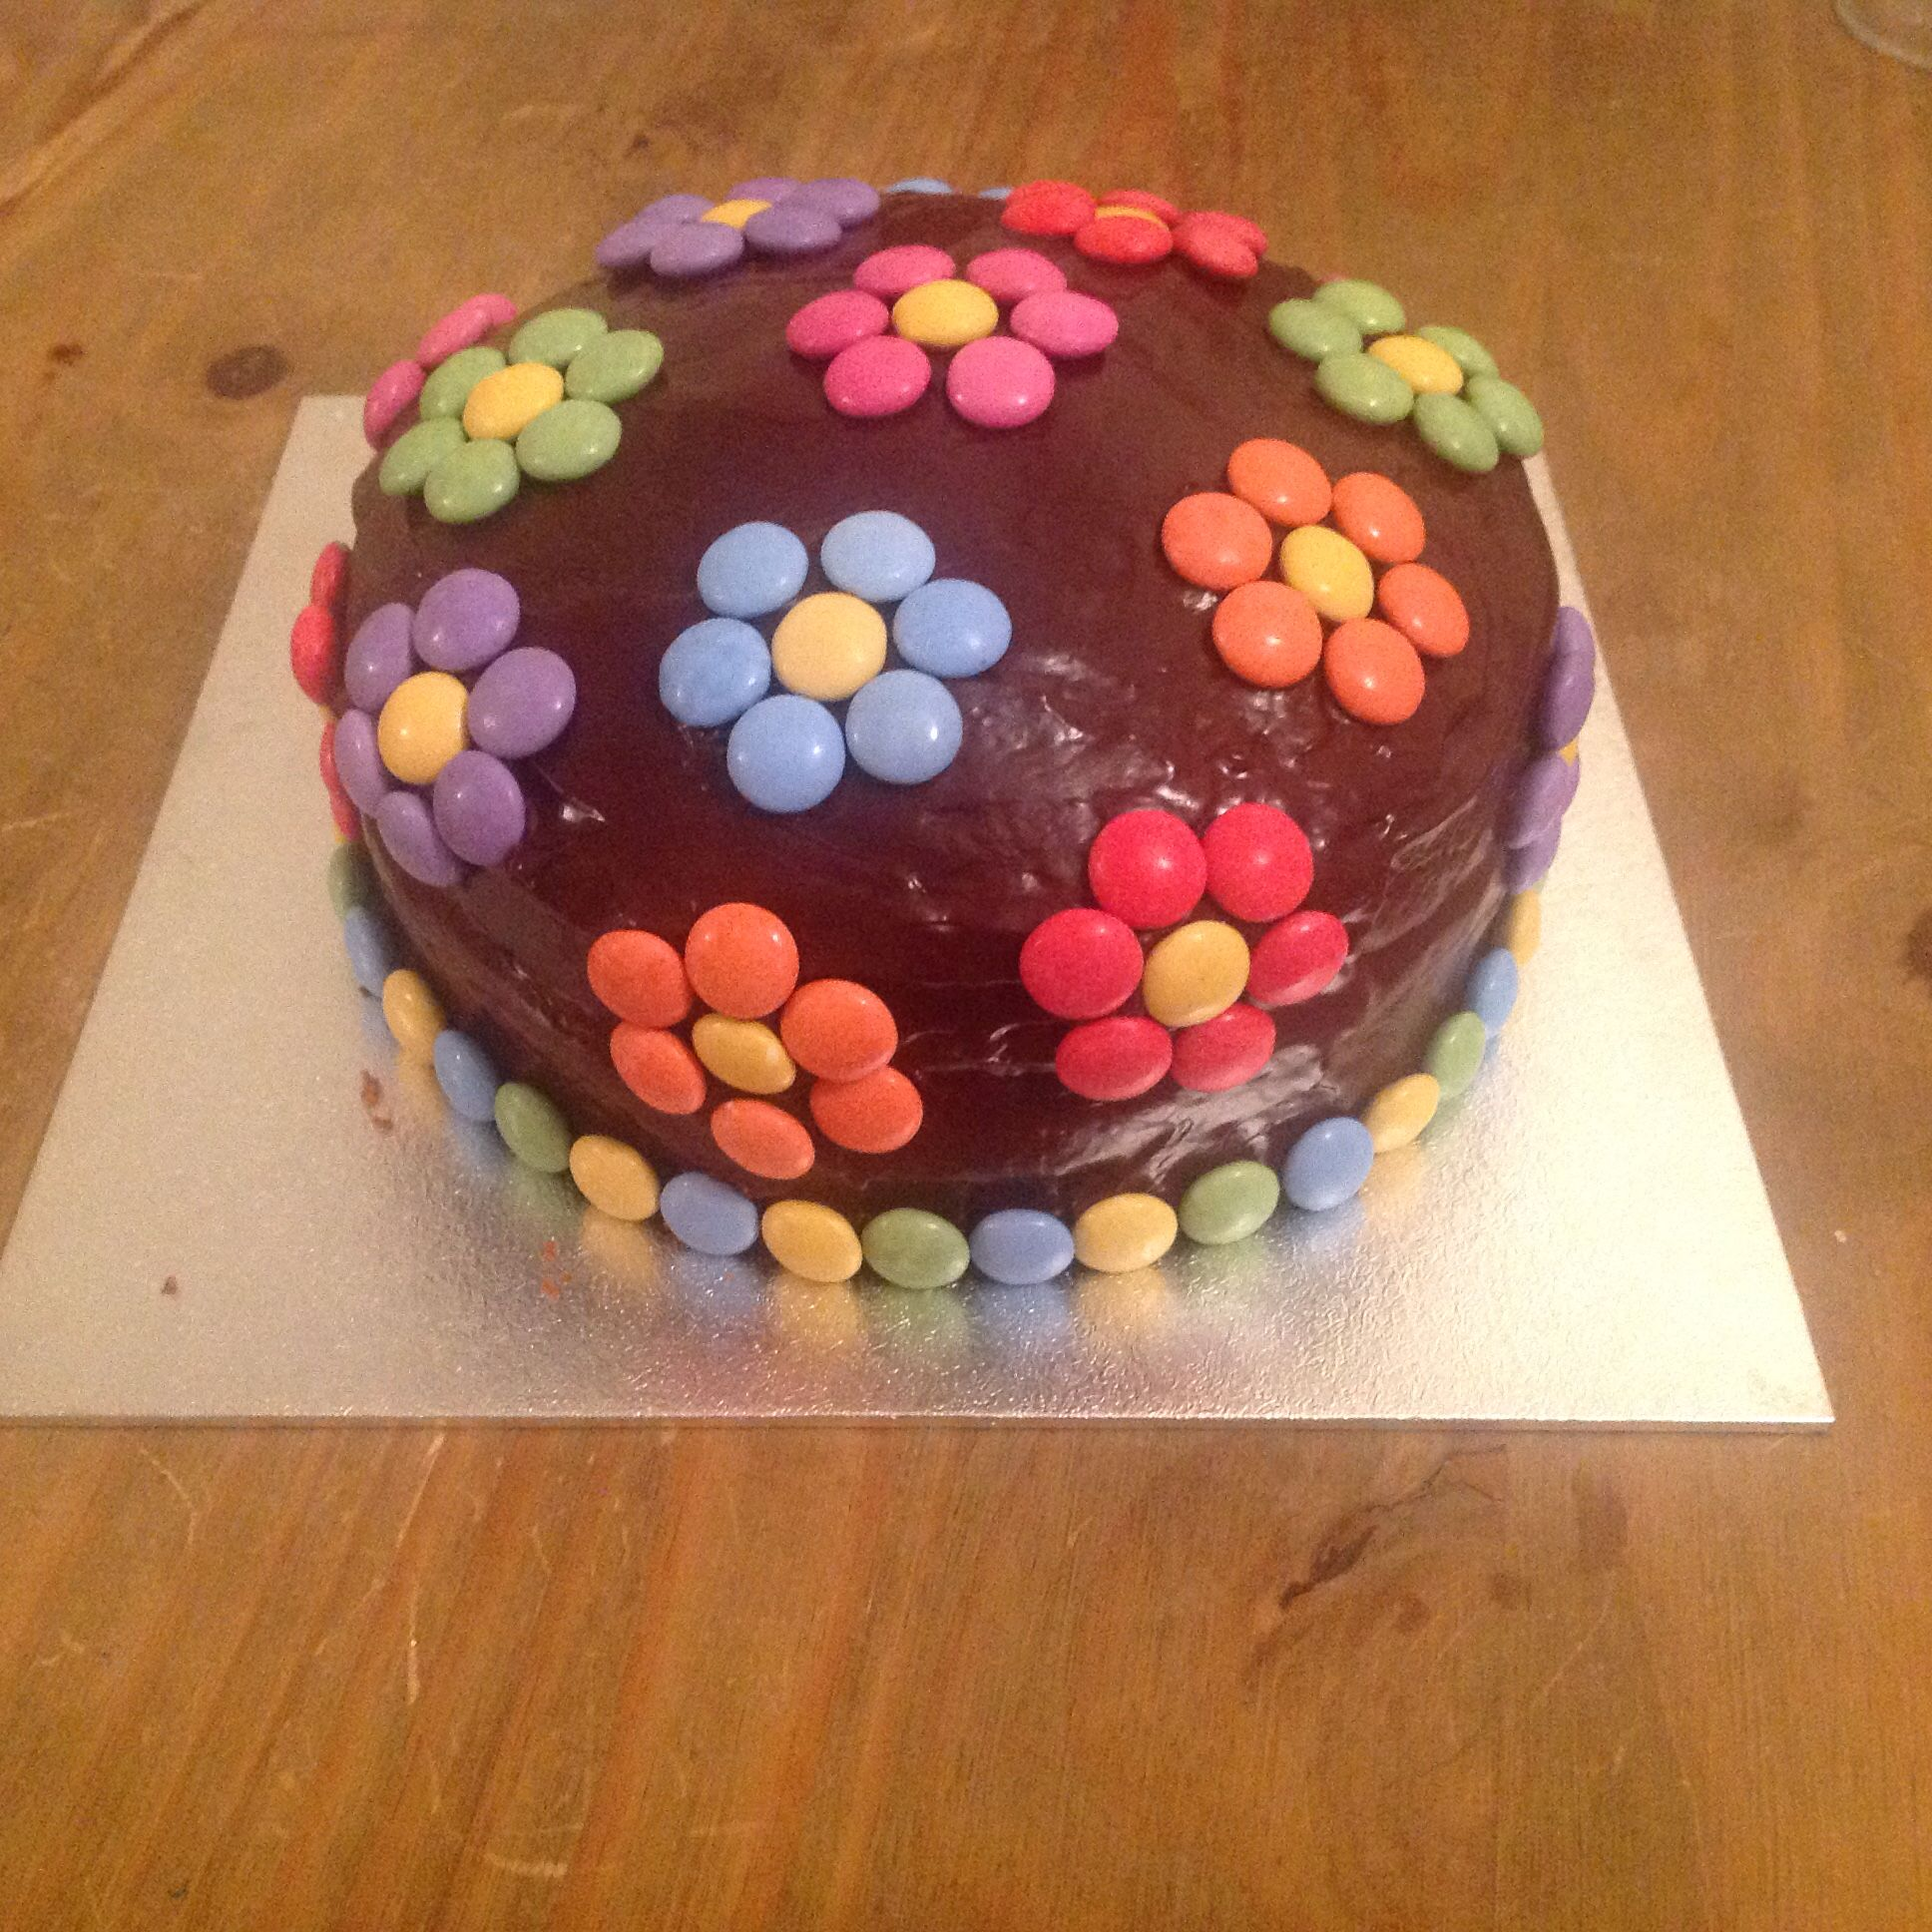 Kitkat Kuchen Mit Smarties Chocolate Cake With Smarties Flowers Chocolate Ganache Topping